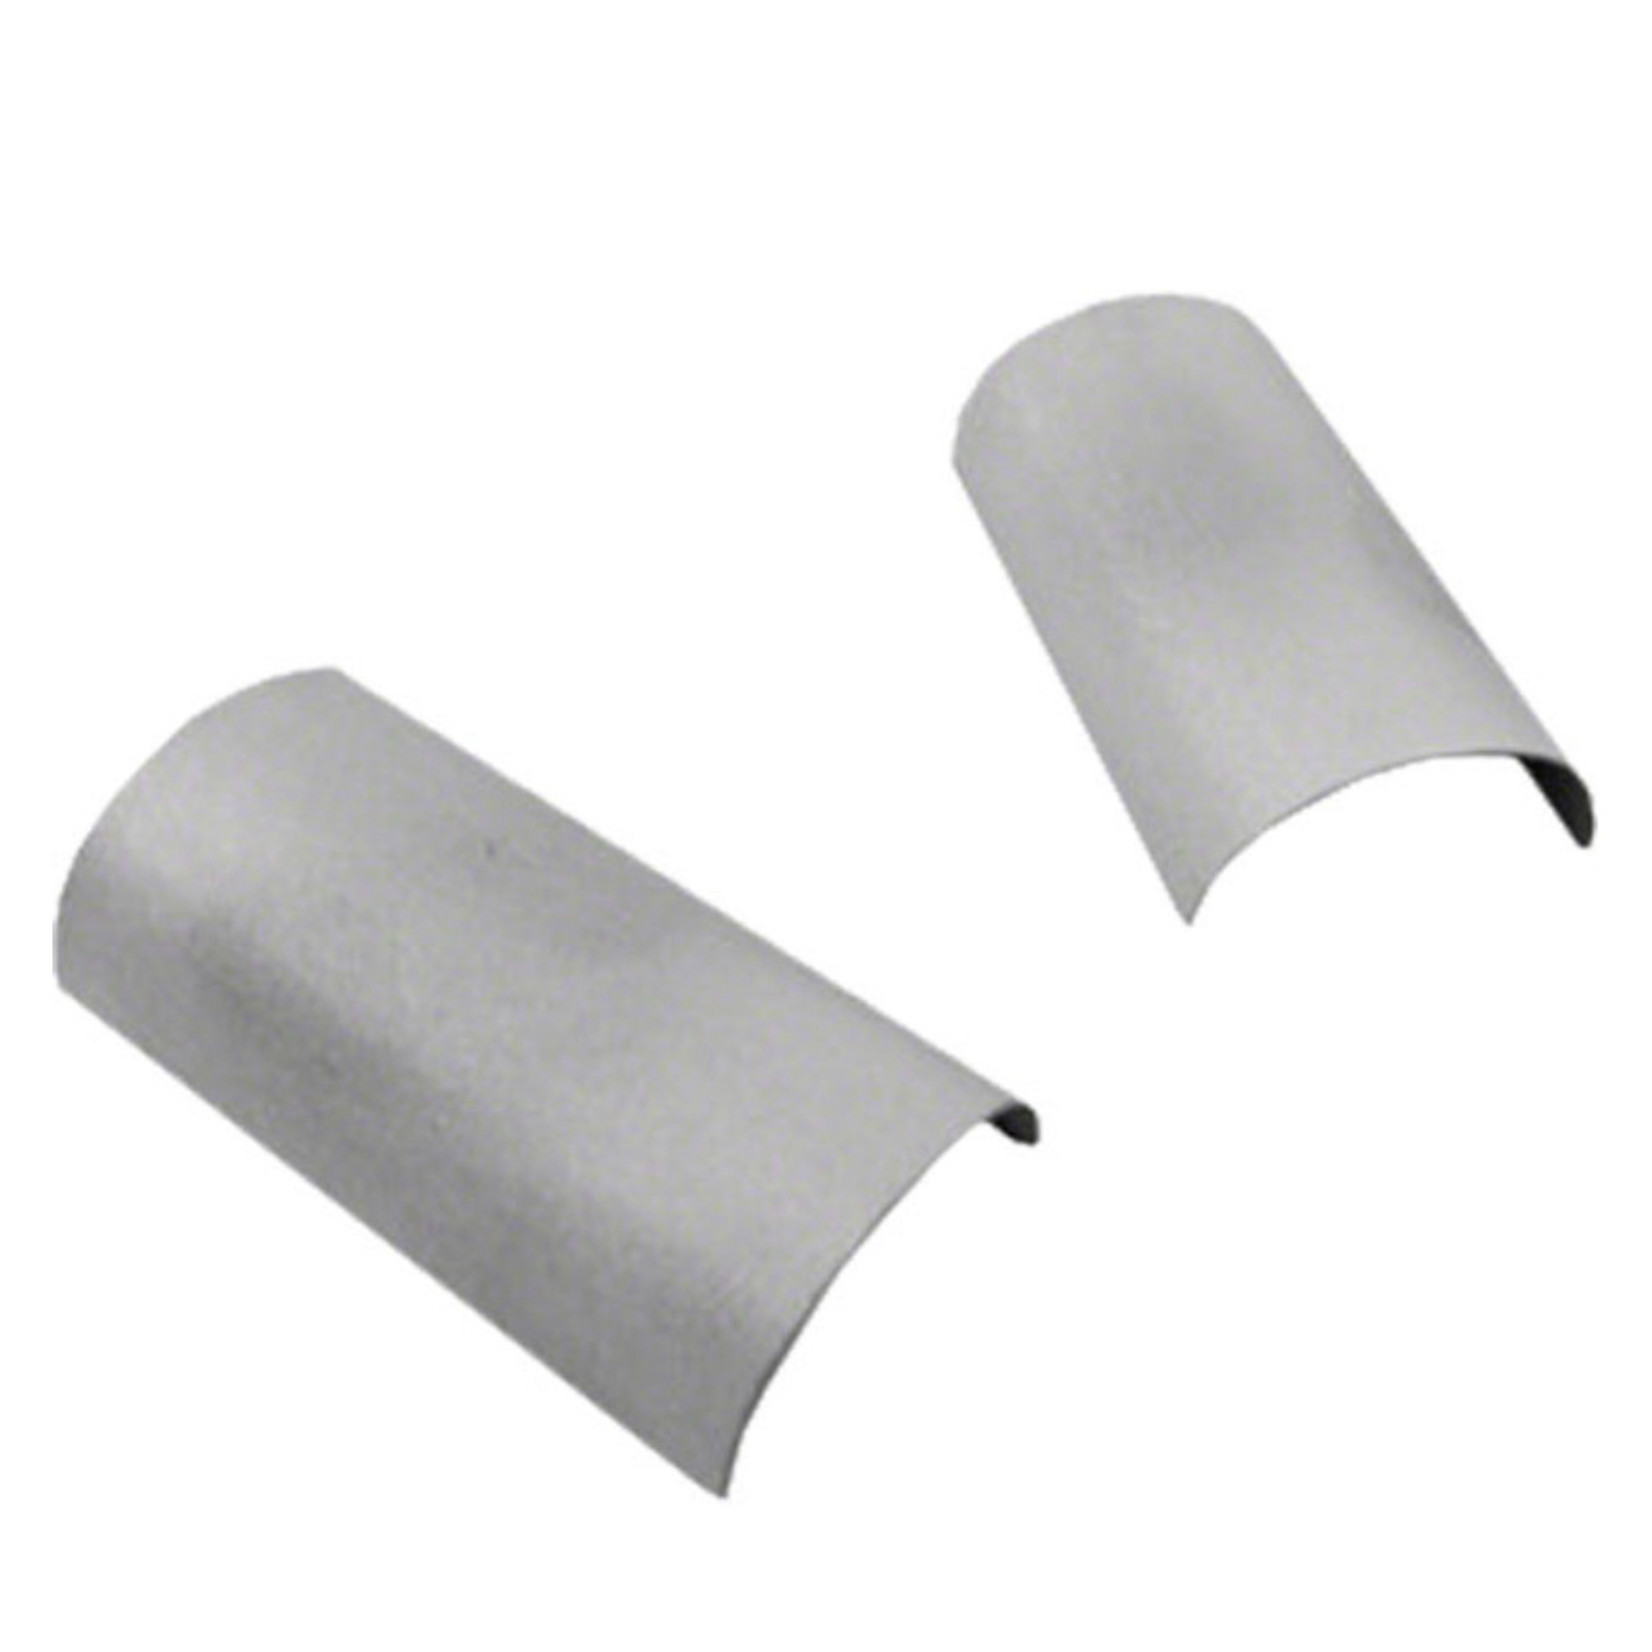 Problem Solvers Handlebar Shim 25.4 to 26.0mm and 35mm length